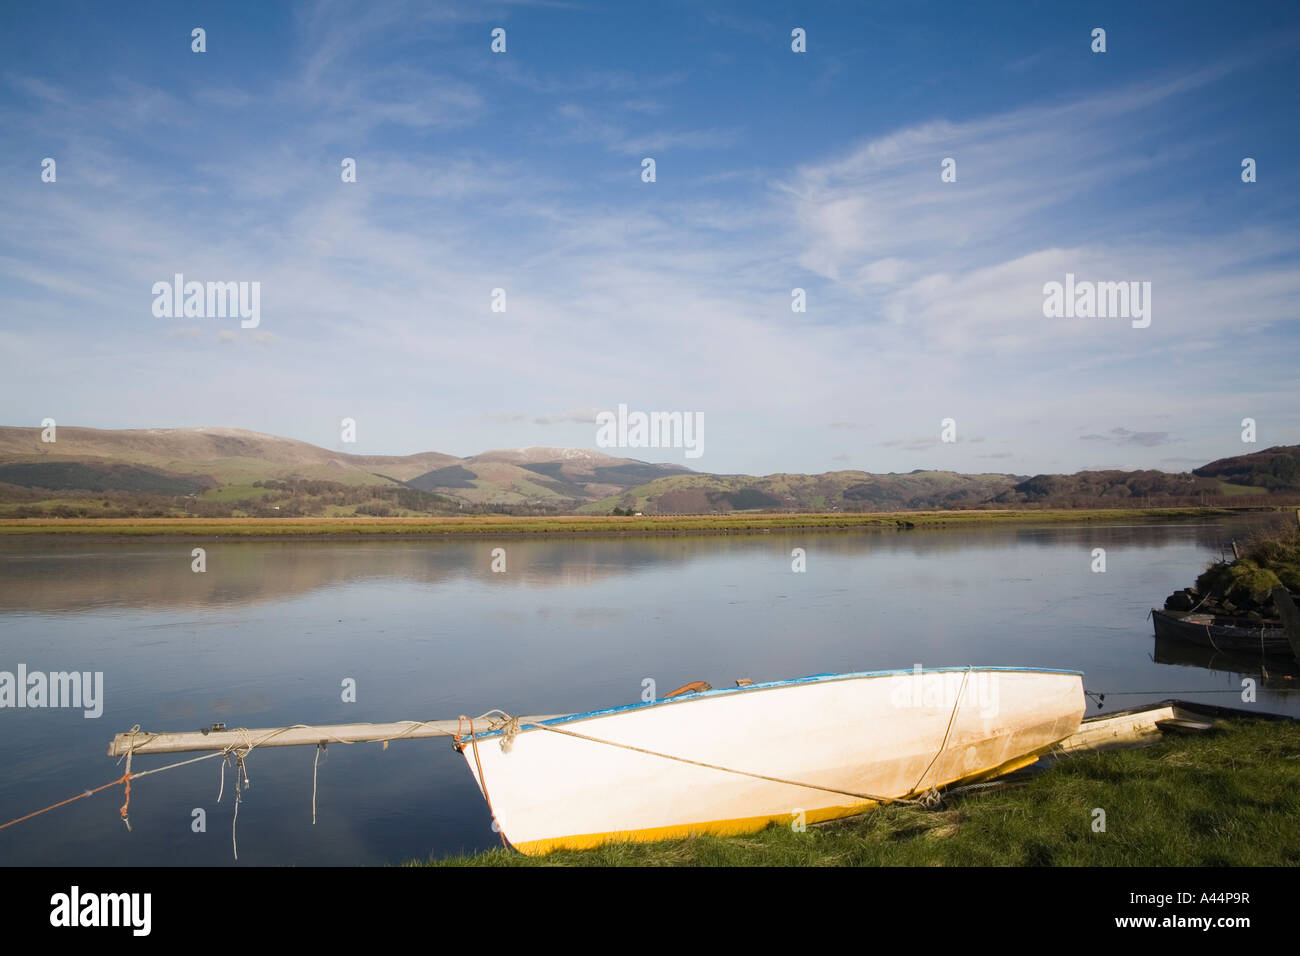 GLANDYFI CEREDIGION MID WALES UK January A white rowing boat is moored at the side of the very wide River Dovey - Stock Image